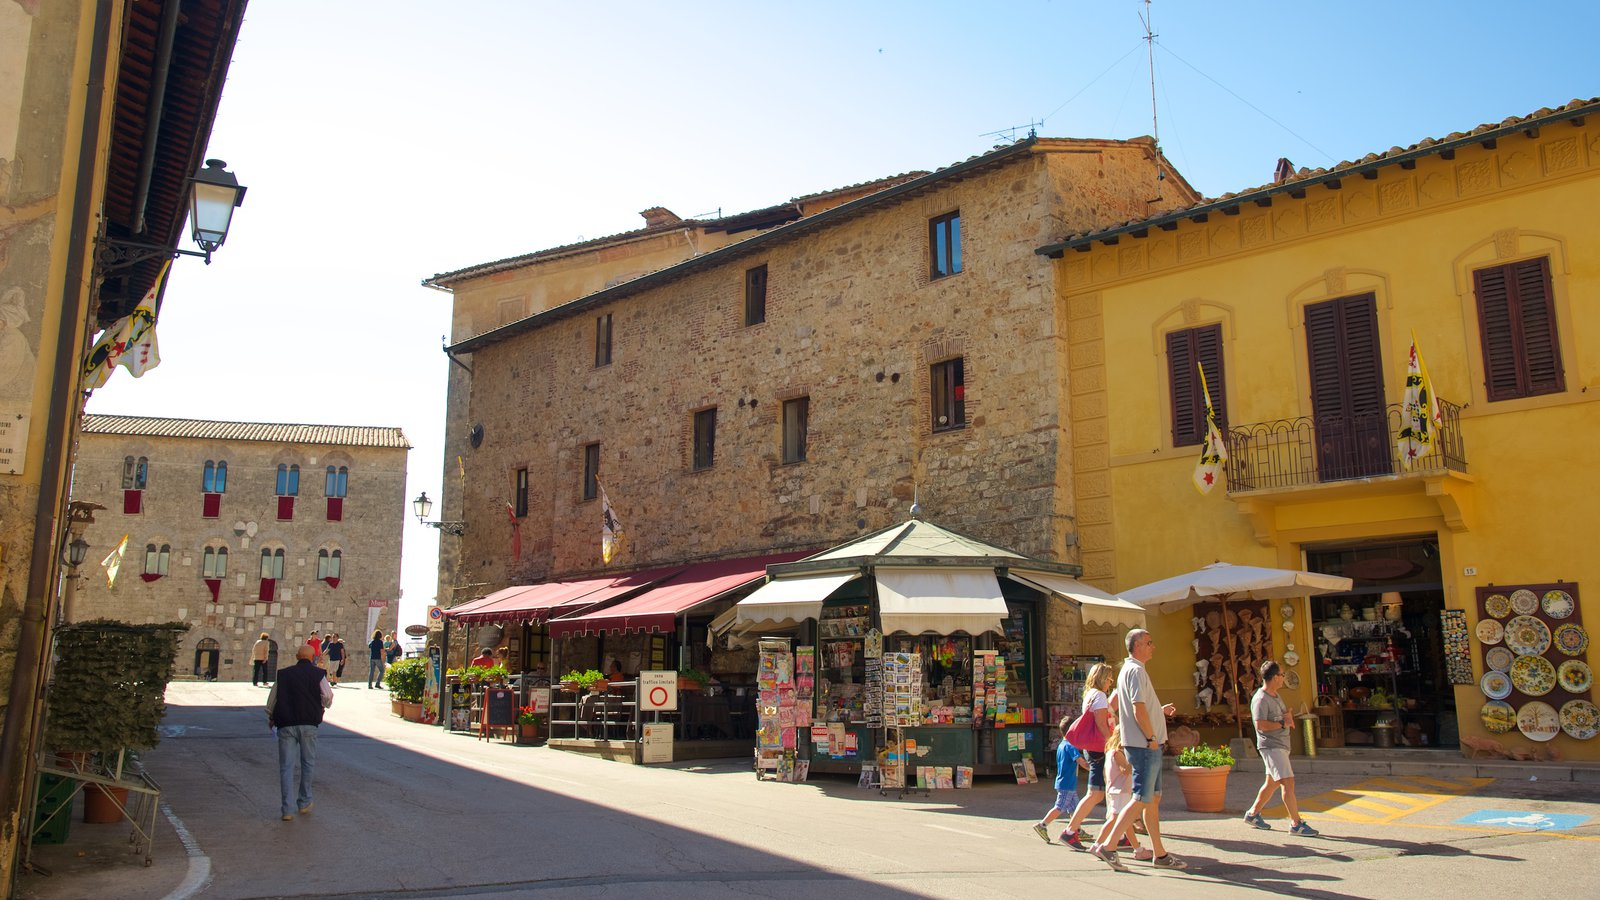 Massa Marittima which includes markets and street scenes as well as a small group of people